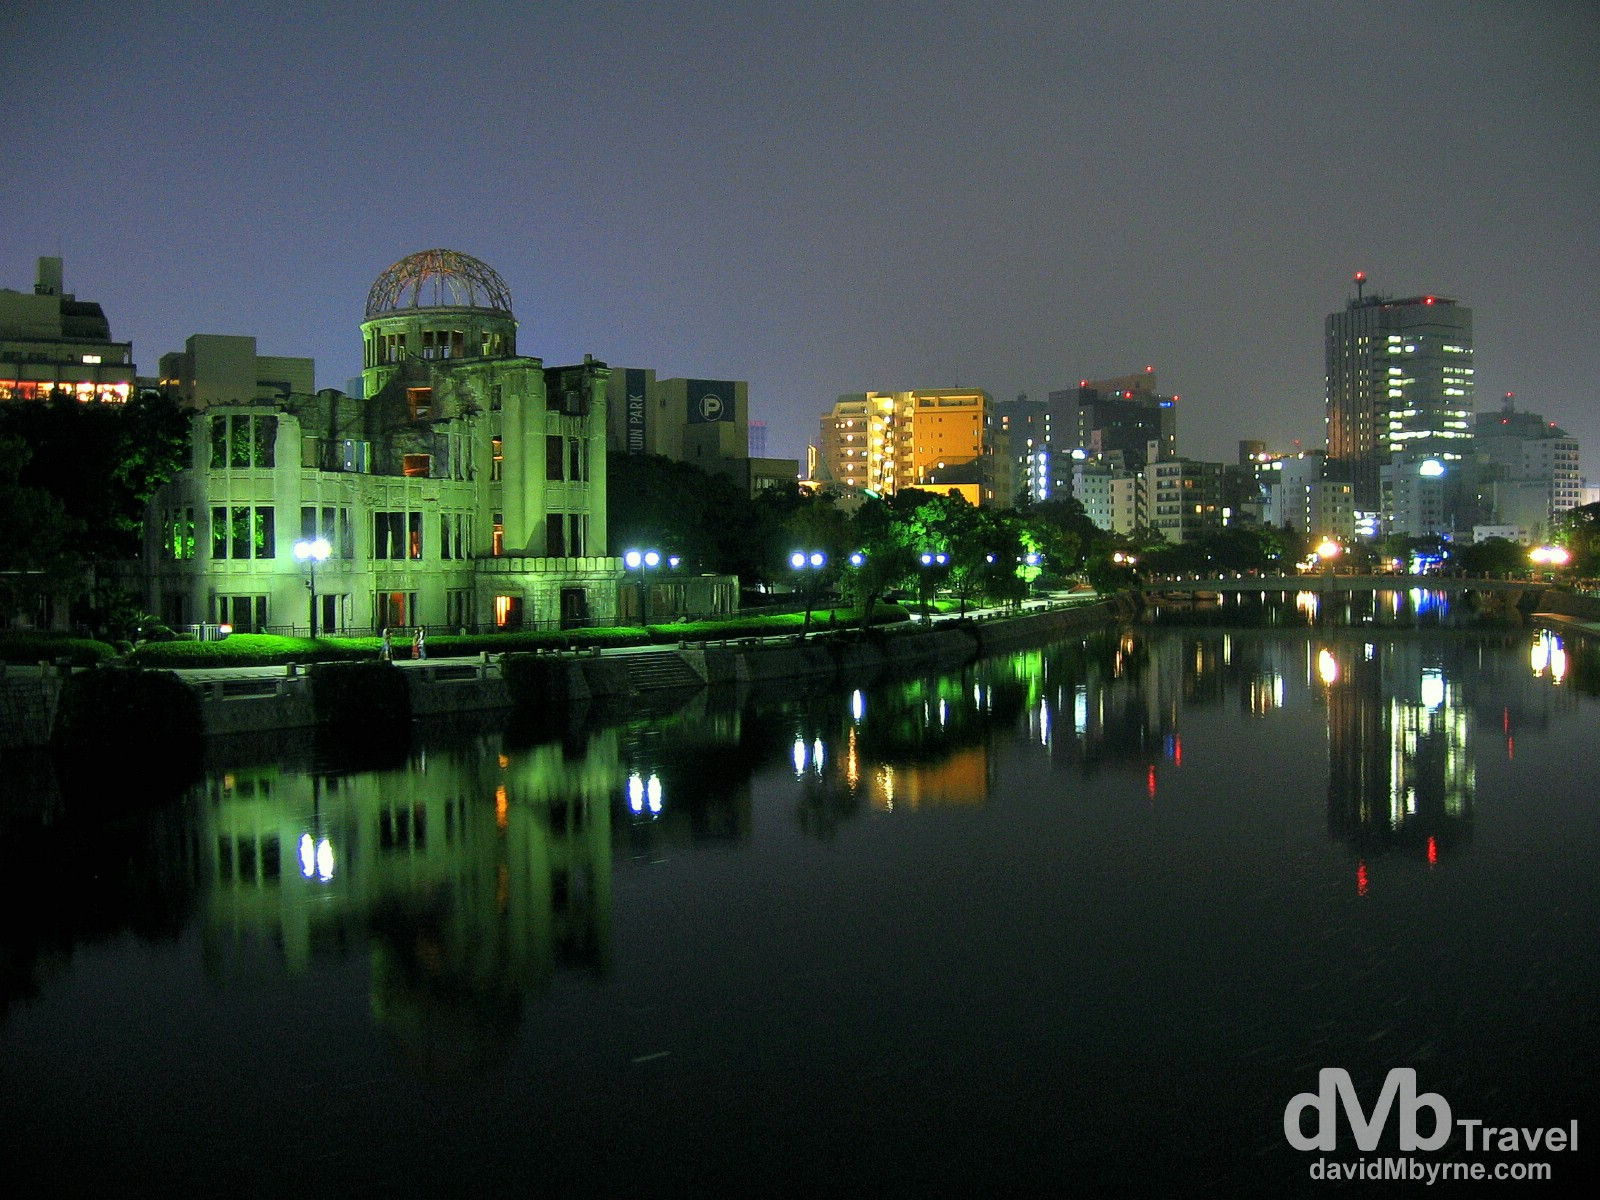 The A-Bomb dome as seen from the T-bridge over the Aioi River in Hiroshima, Honshu, Japan. July 22nd 2005.